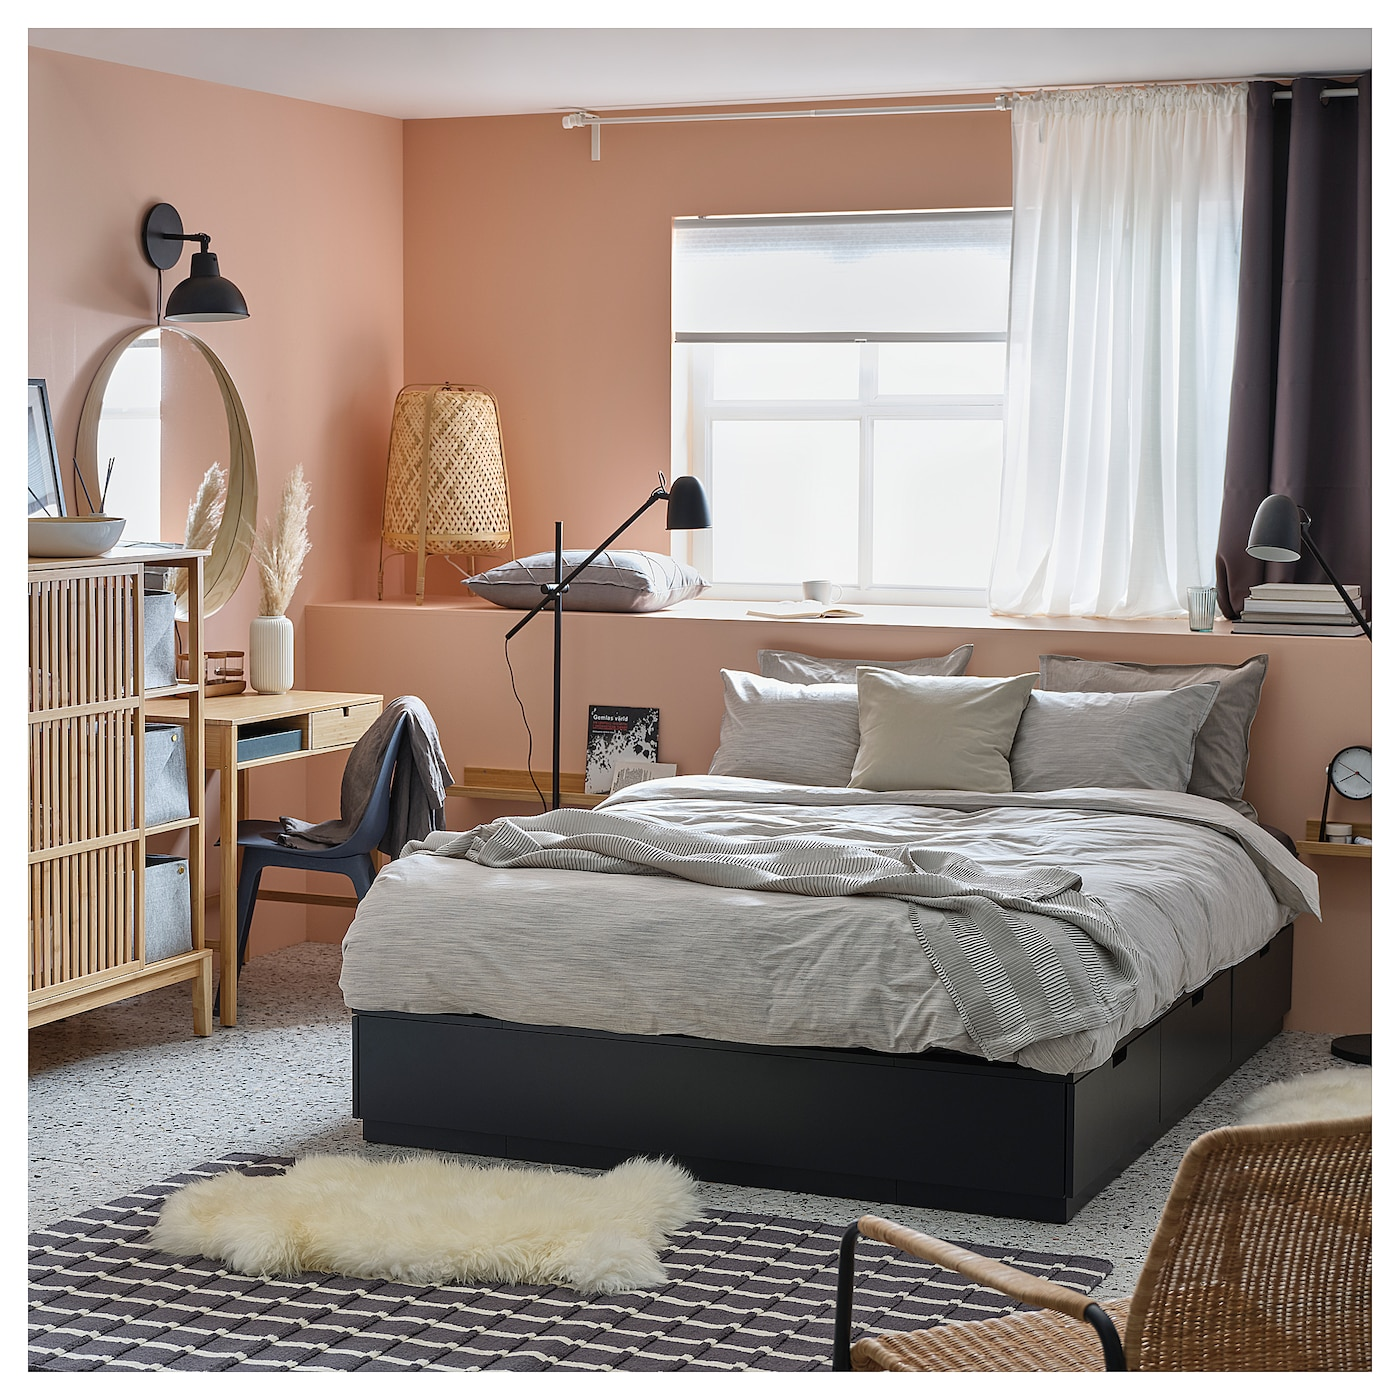 Nordli Bed Frame With Storage Anthracite King Ikea,3 Bedroom Apartments In St Louis